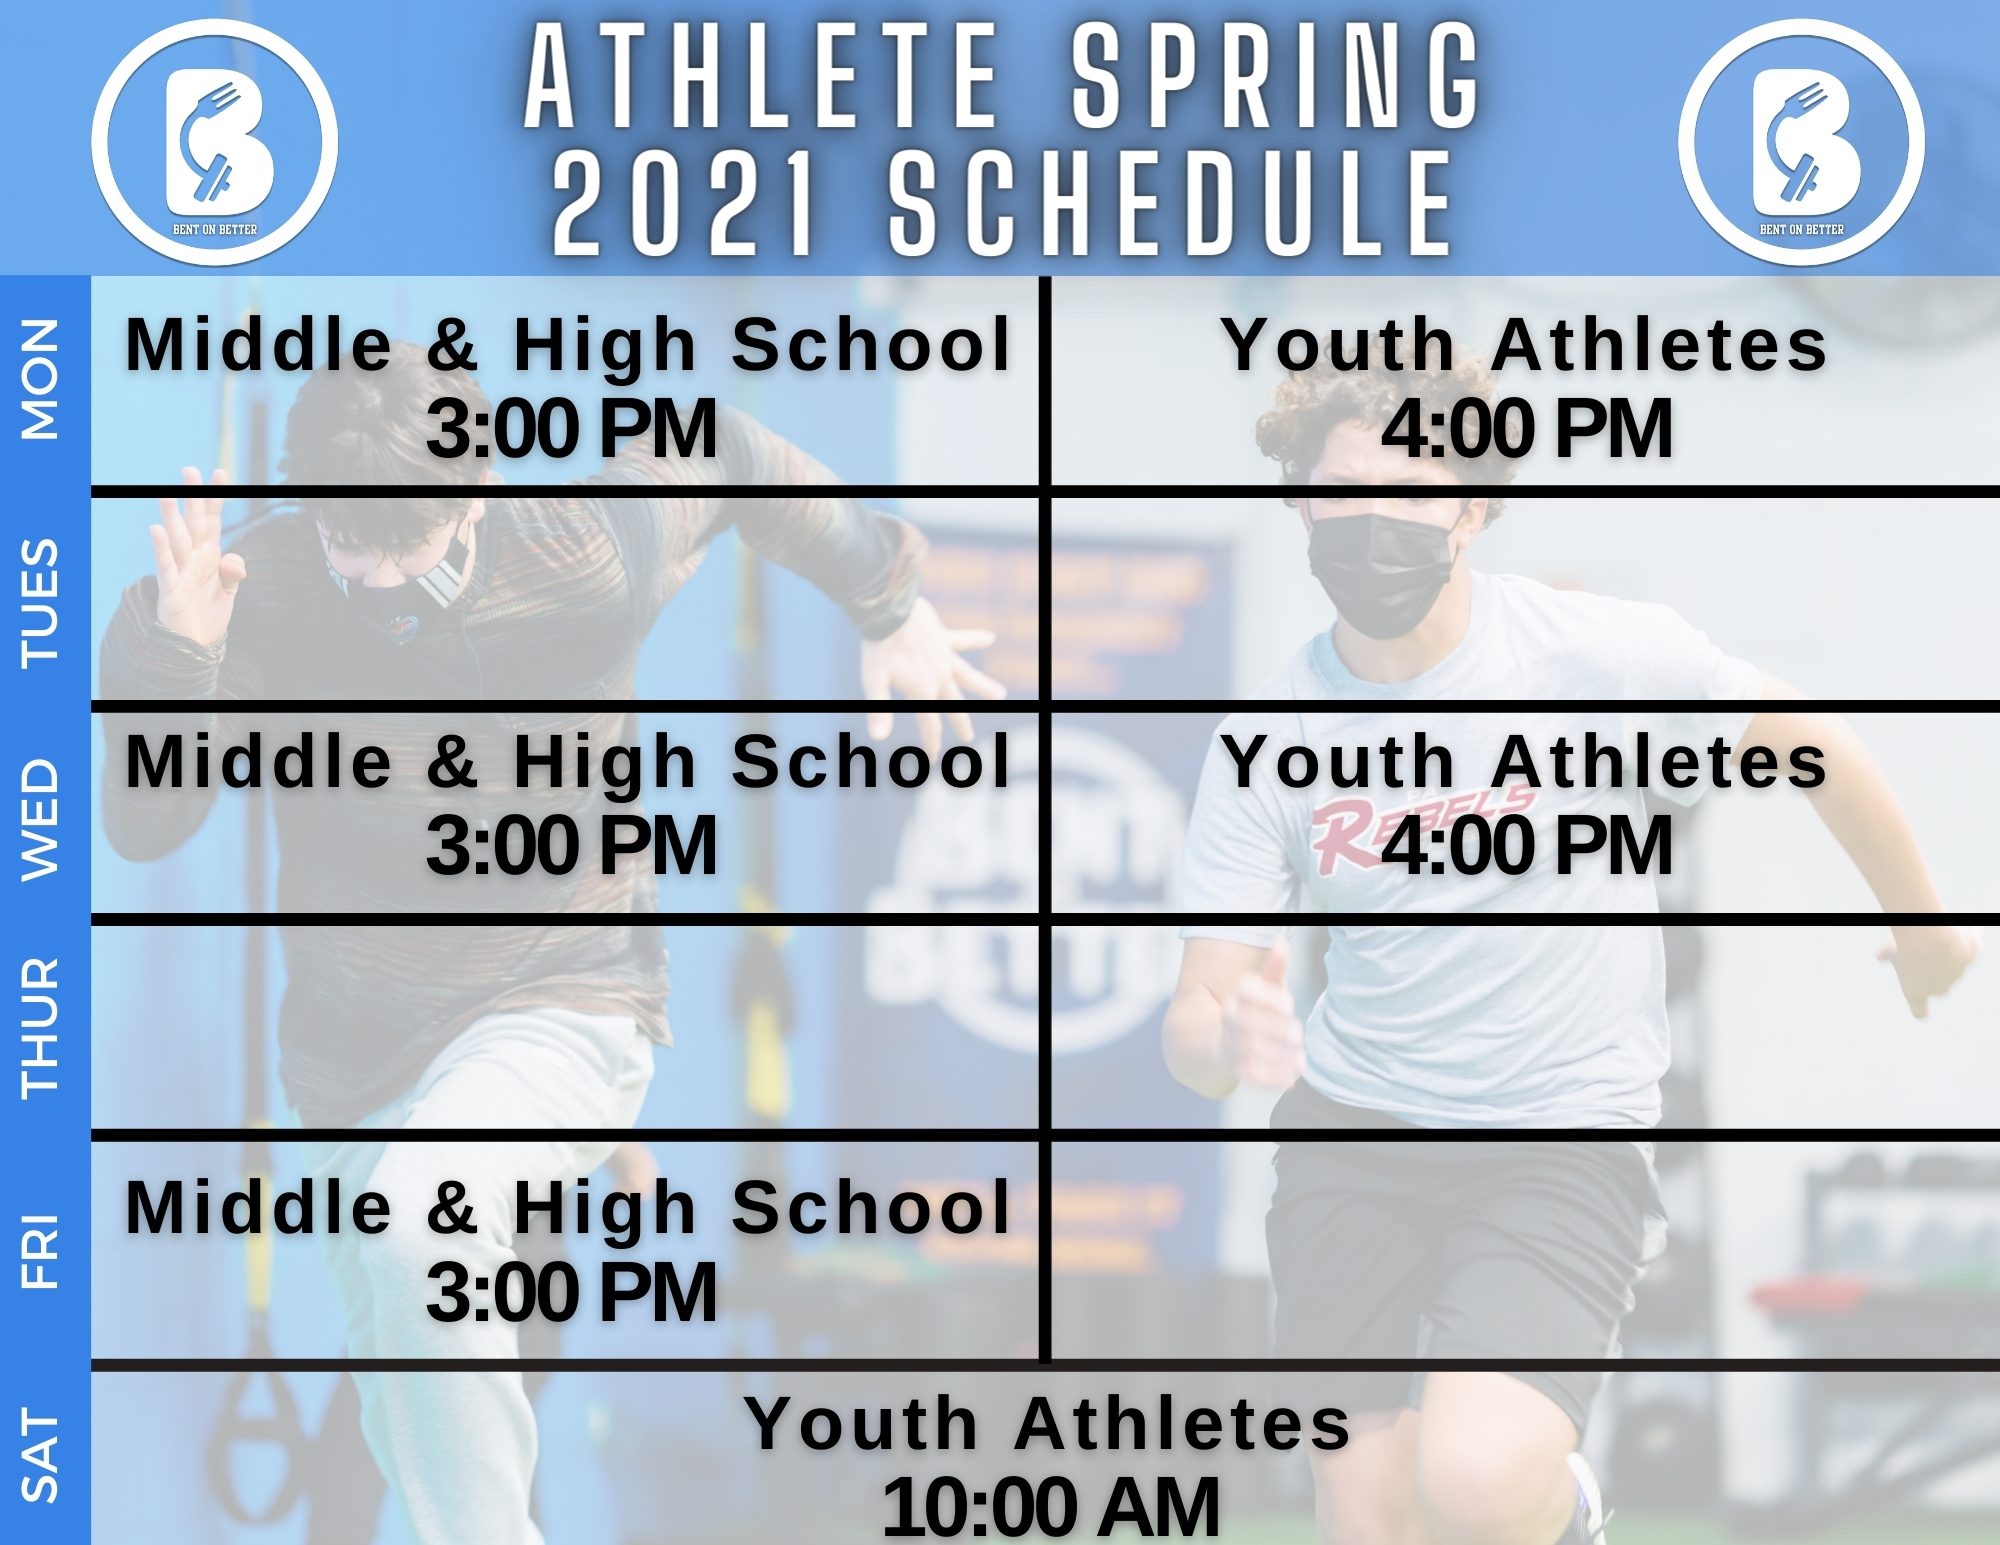 Athlete Schedule Bent On Better